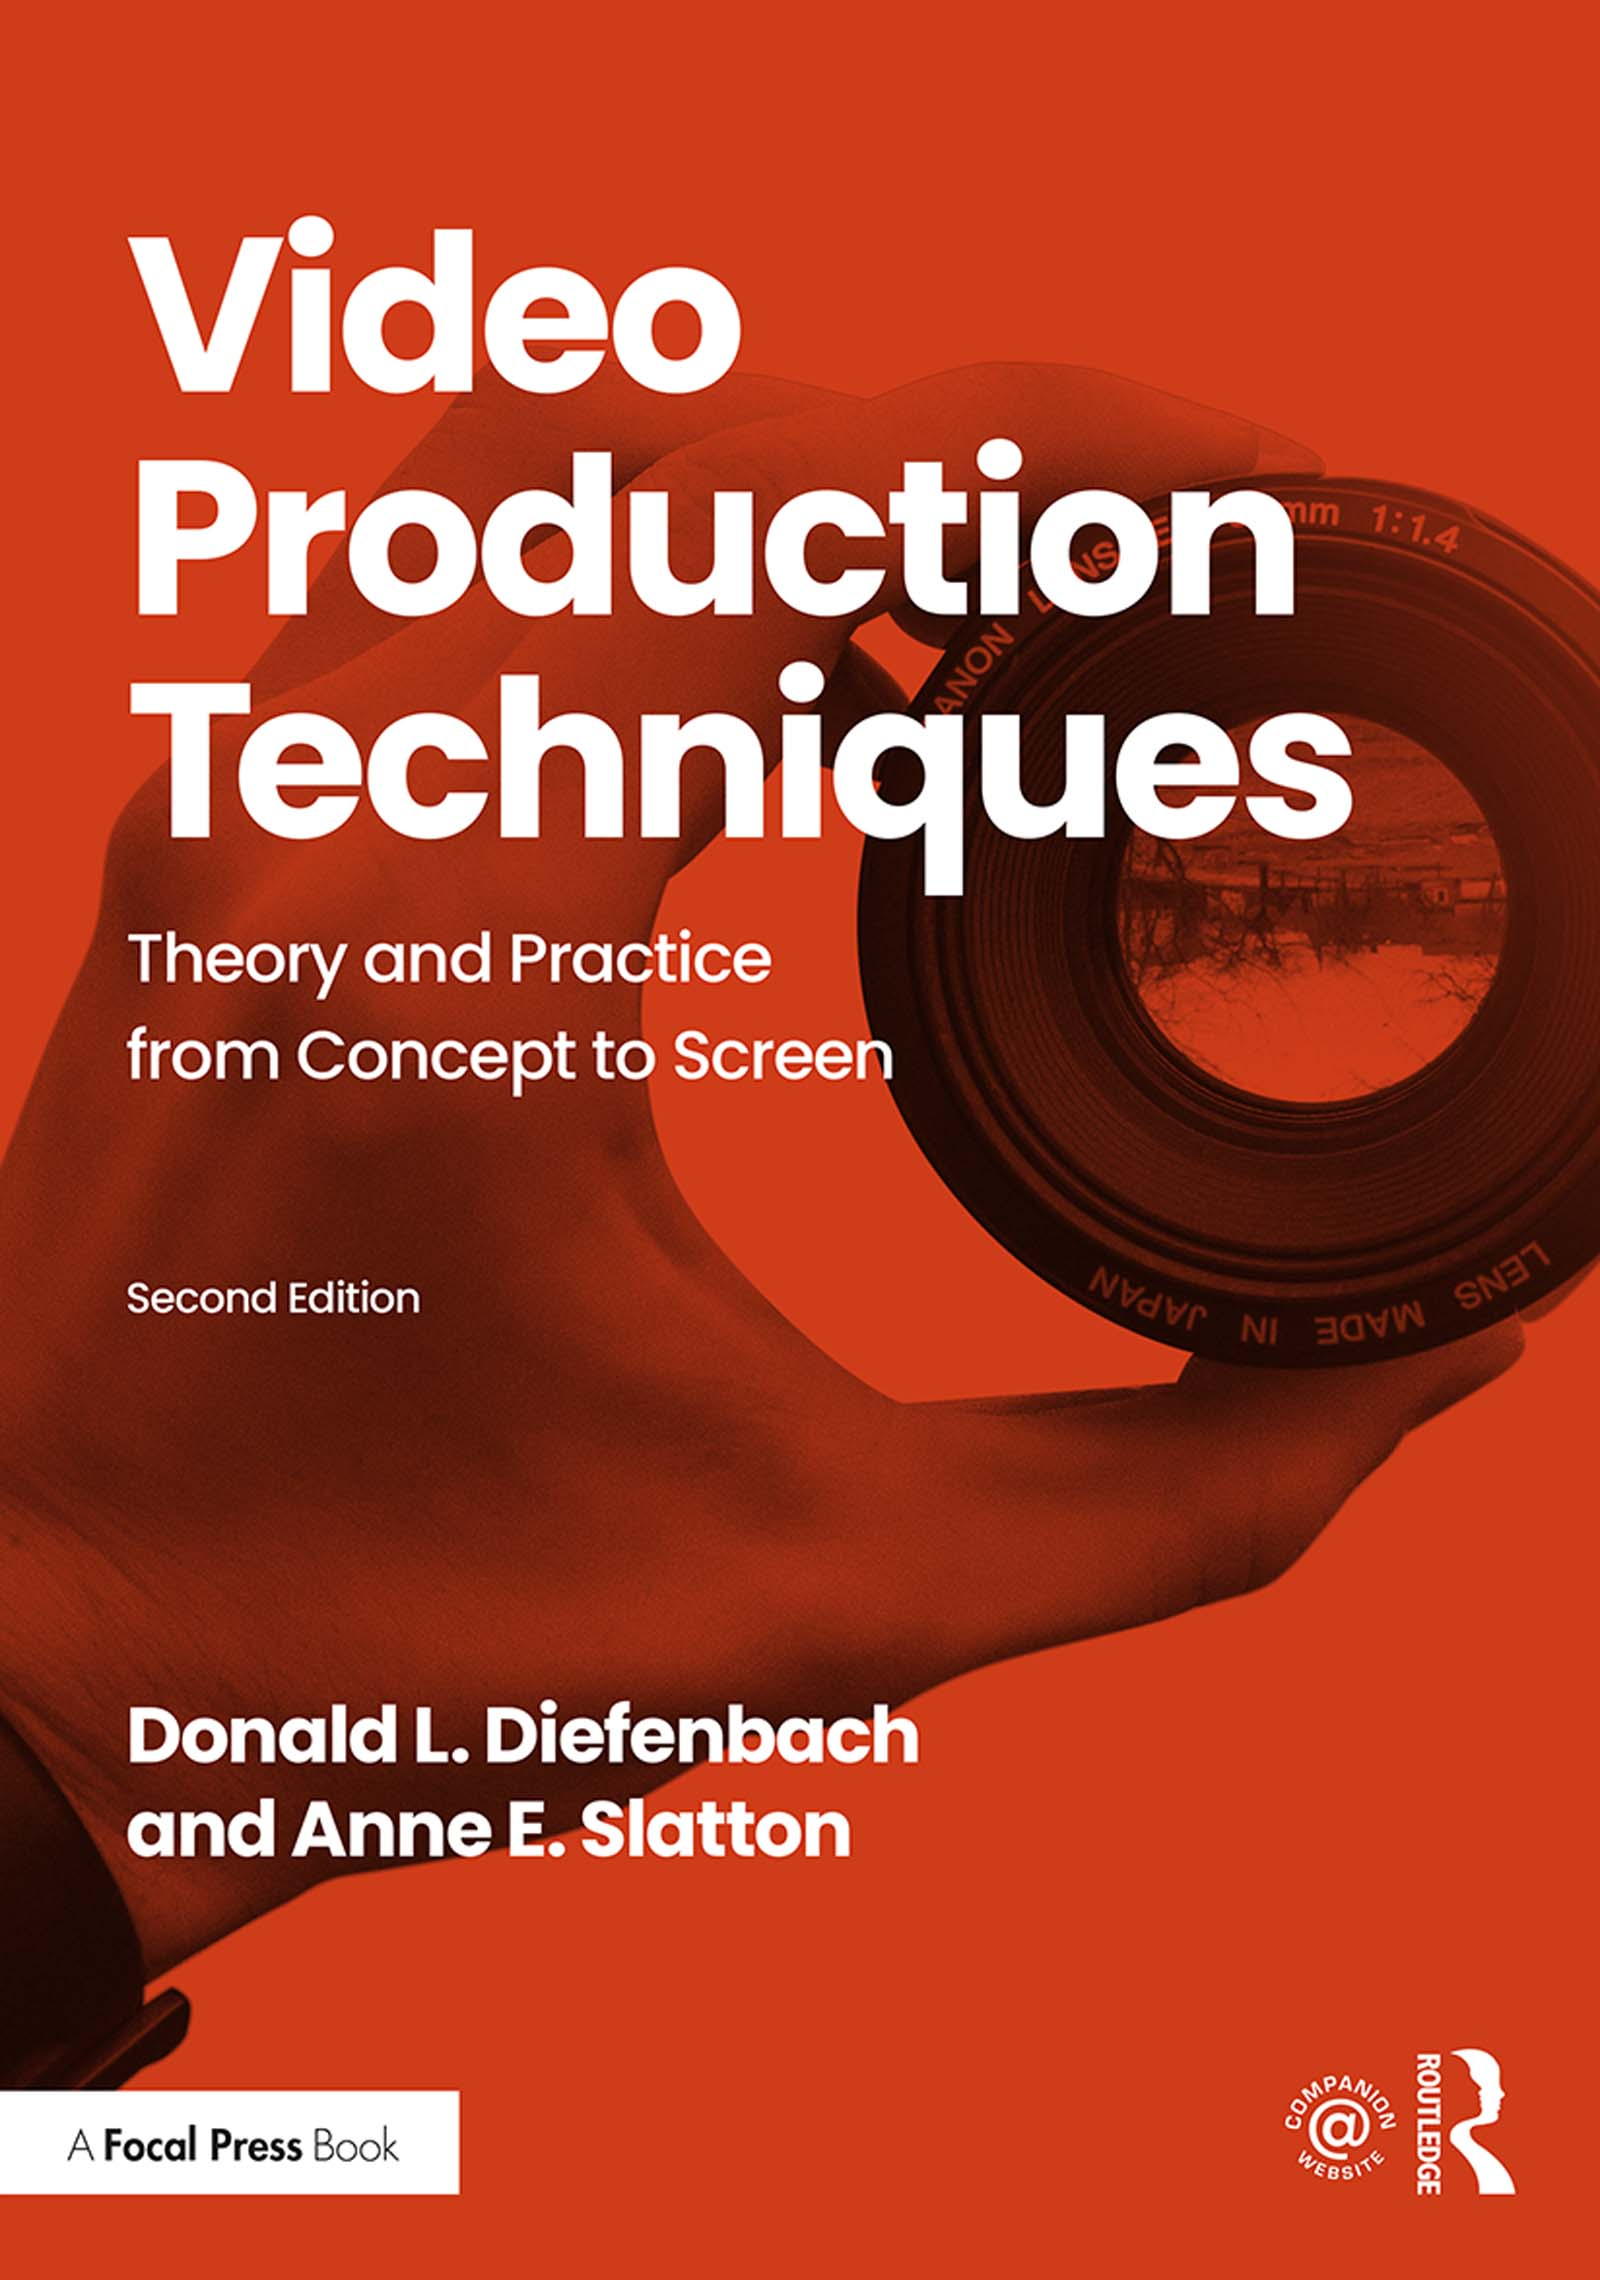 Video Production Techniques: Theory and Practice from Concept to Screen book cover